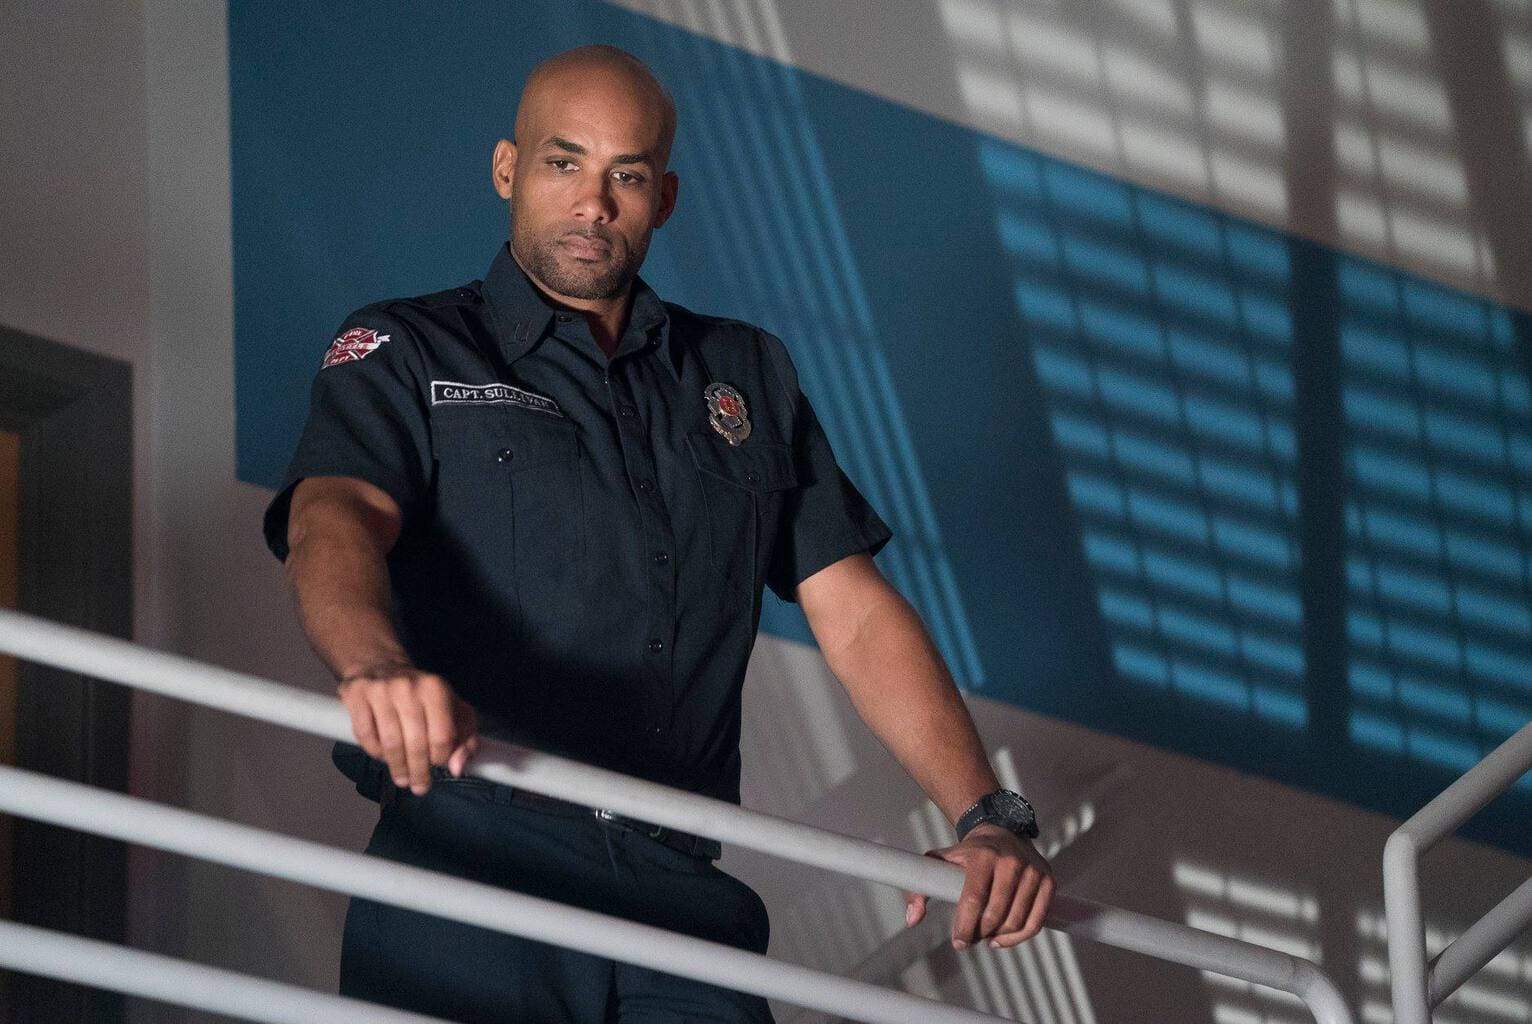 Visit the Set of Station 19 - Boris Kodjoe - Captain Sullivan